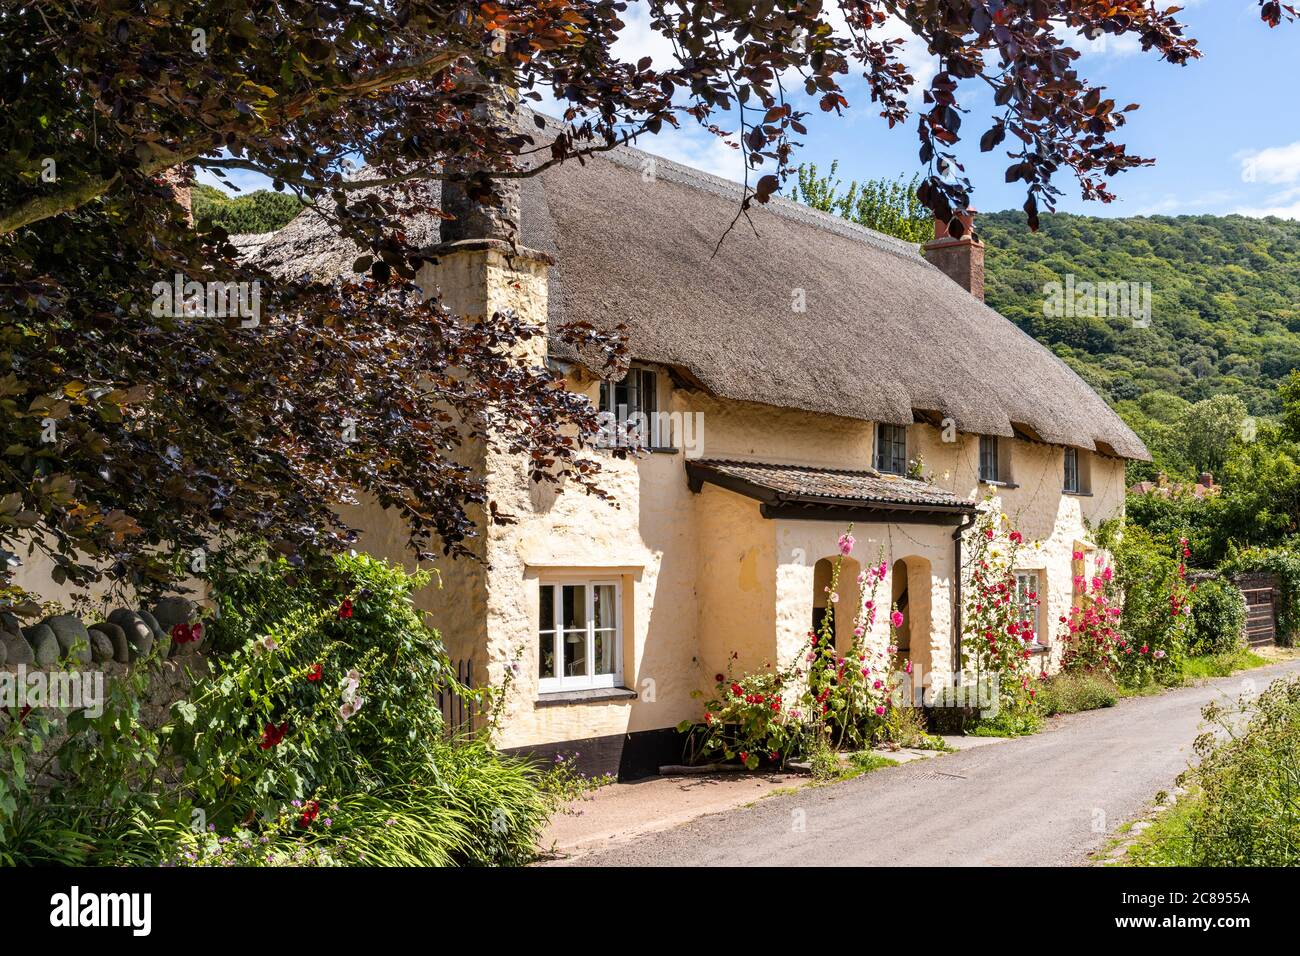 Hollyhocks flowering outside a traditional thatched cottage on Exmoor National Park in the village of Bossington, Somerset UK Stock Photo